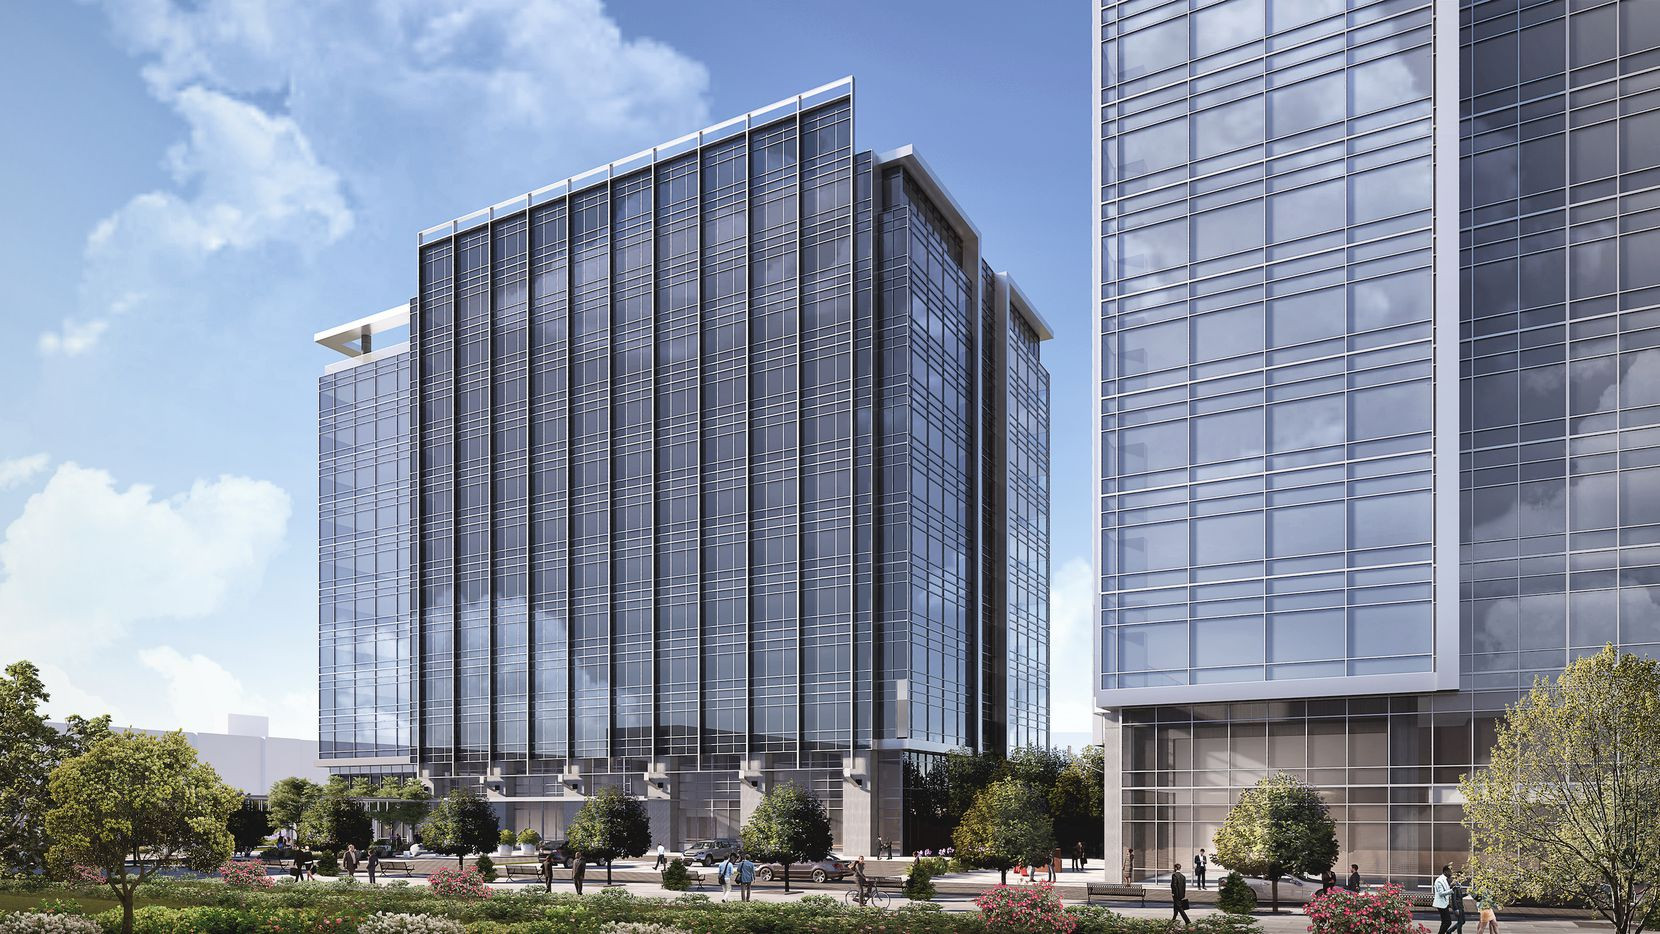 Developer Cawley Partners plans two 12-story office towers on the Dallas North Tollway in Frisco.